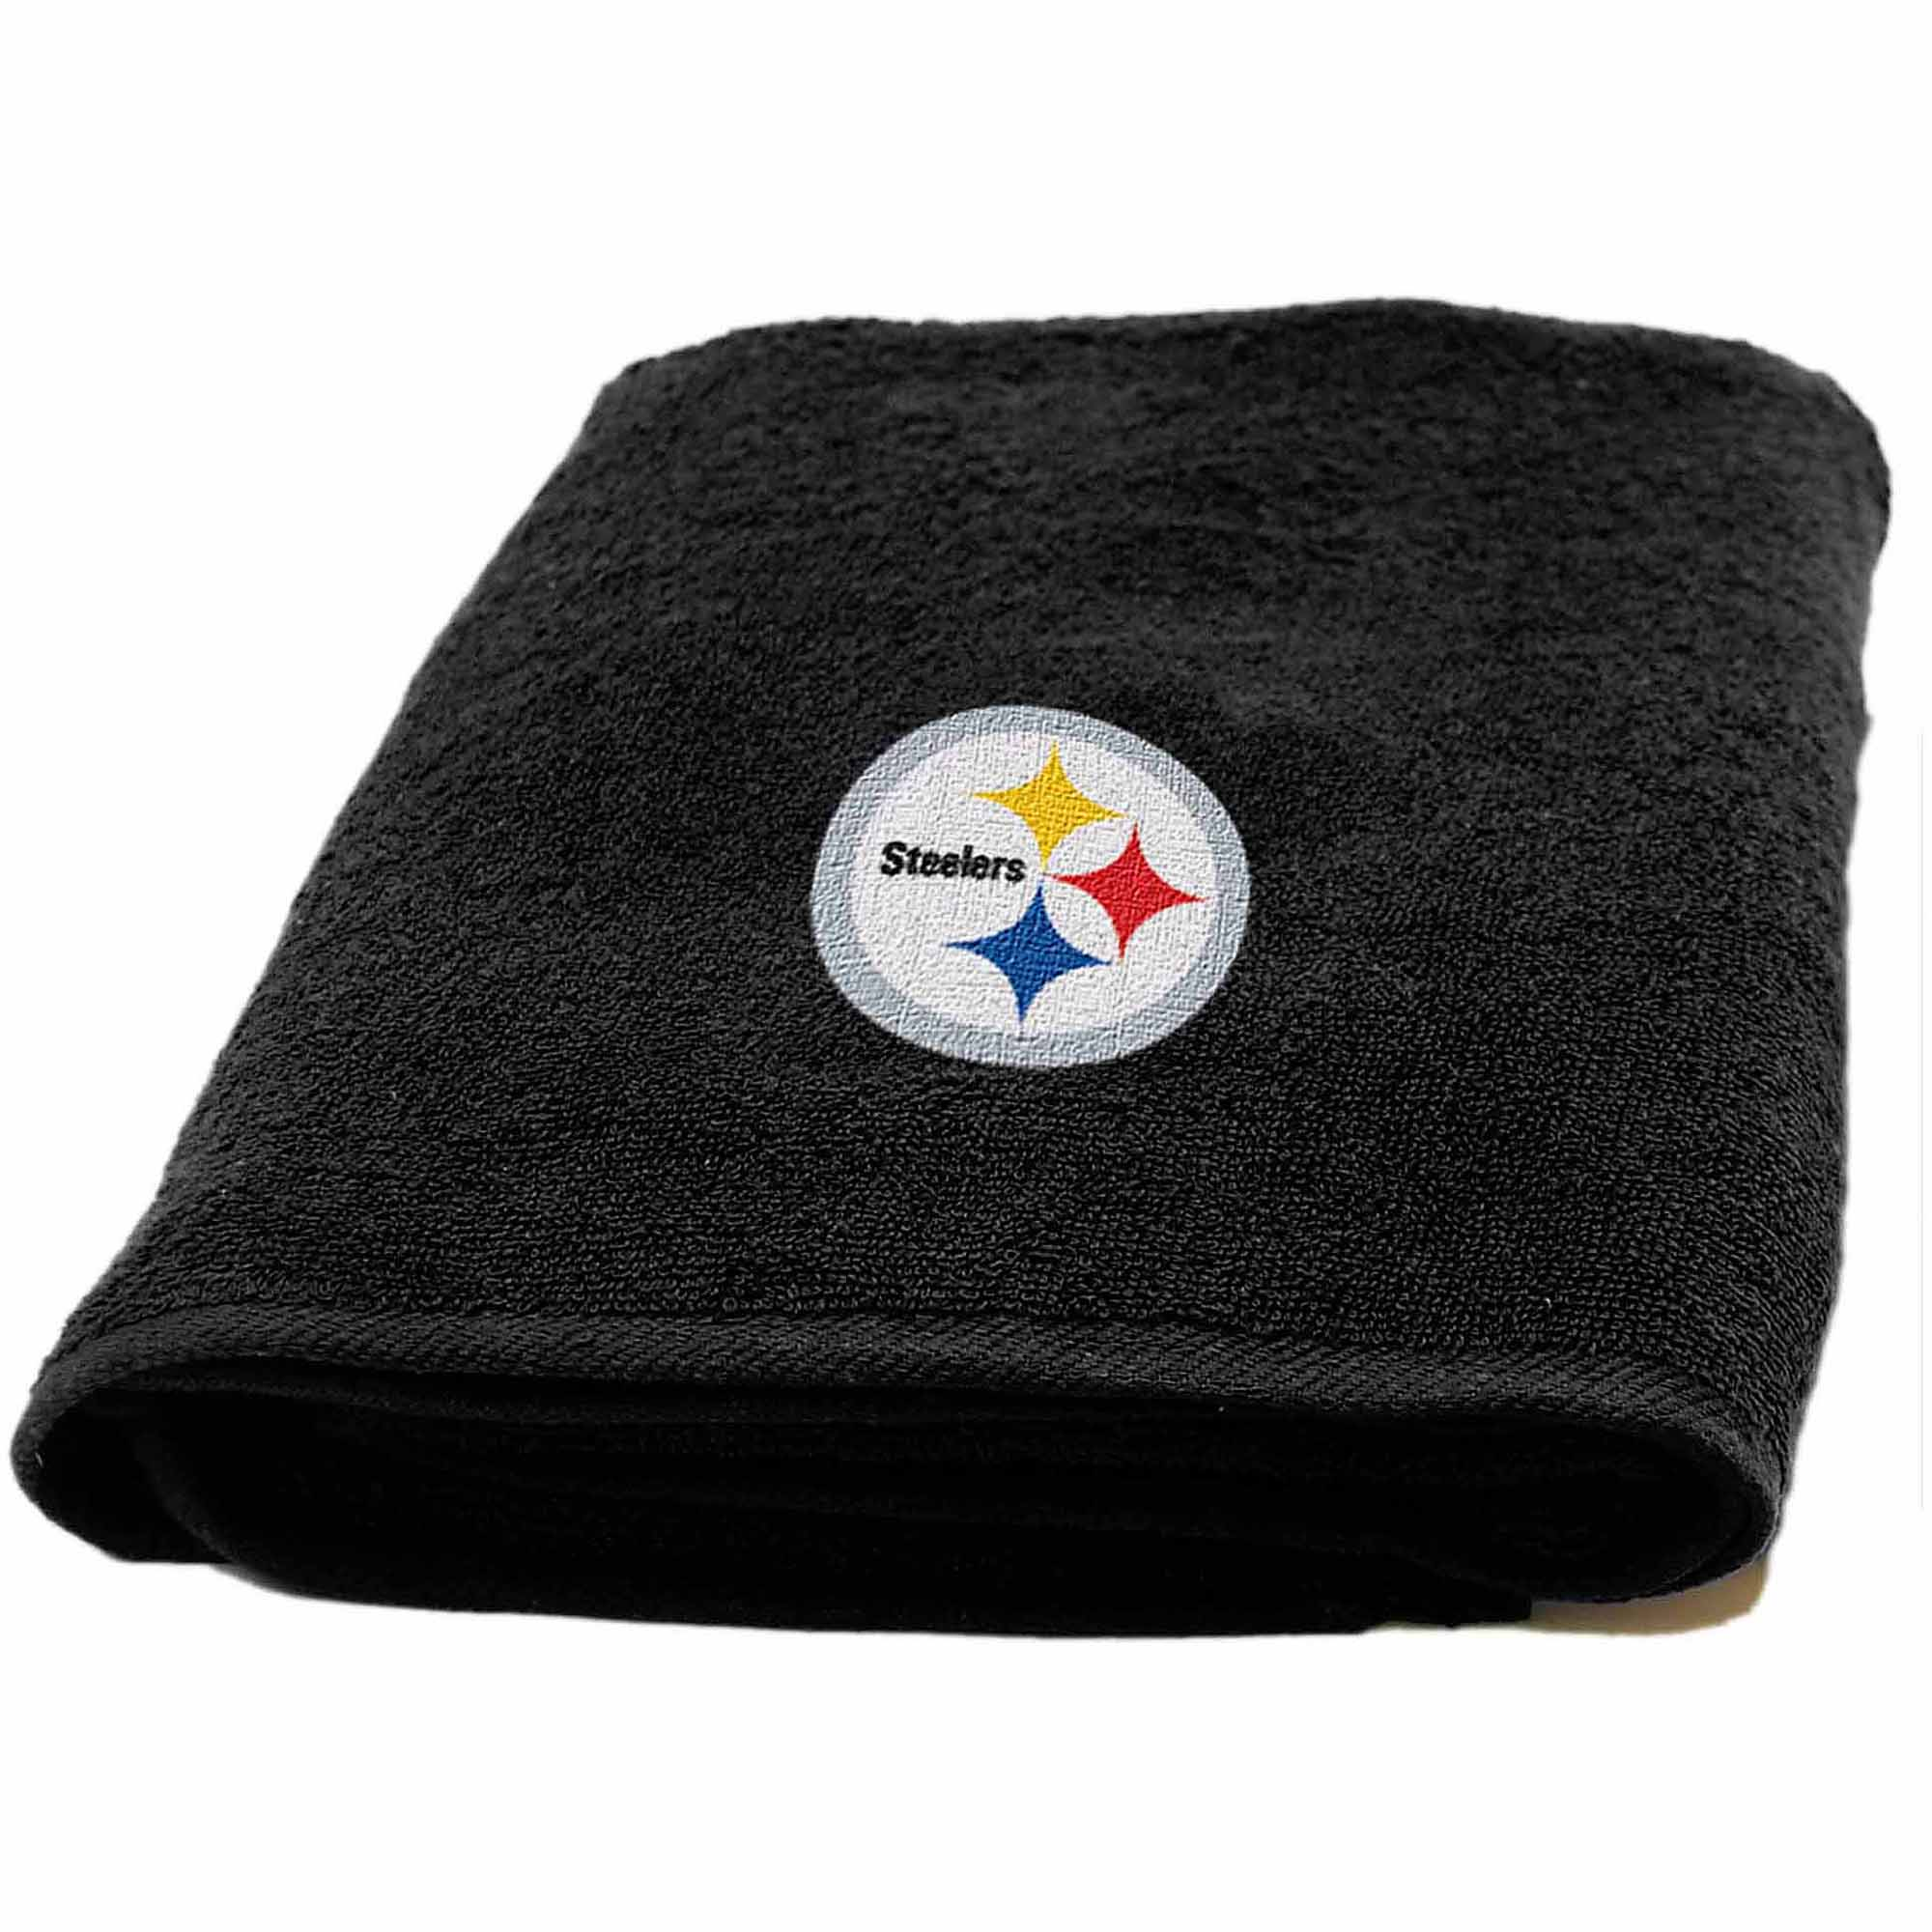 NFL Pittsburgh Steelers Decorative Bath Collection - Bath Towel